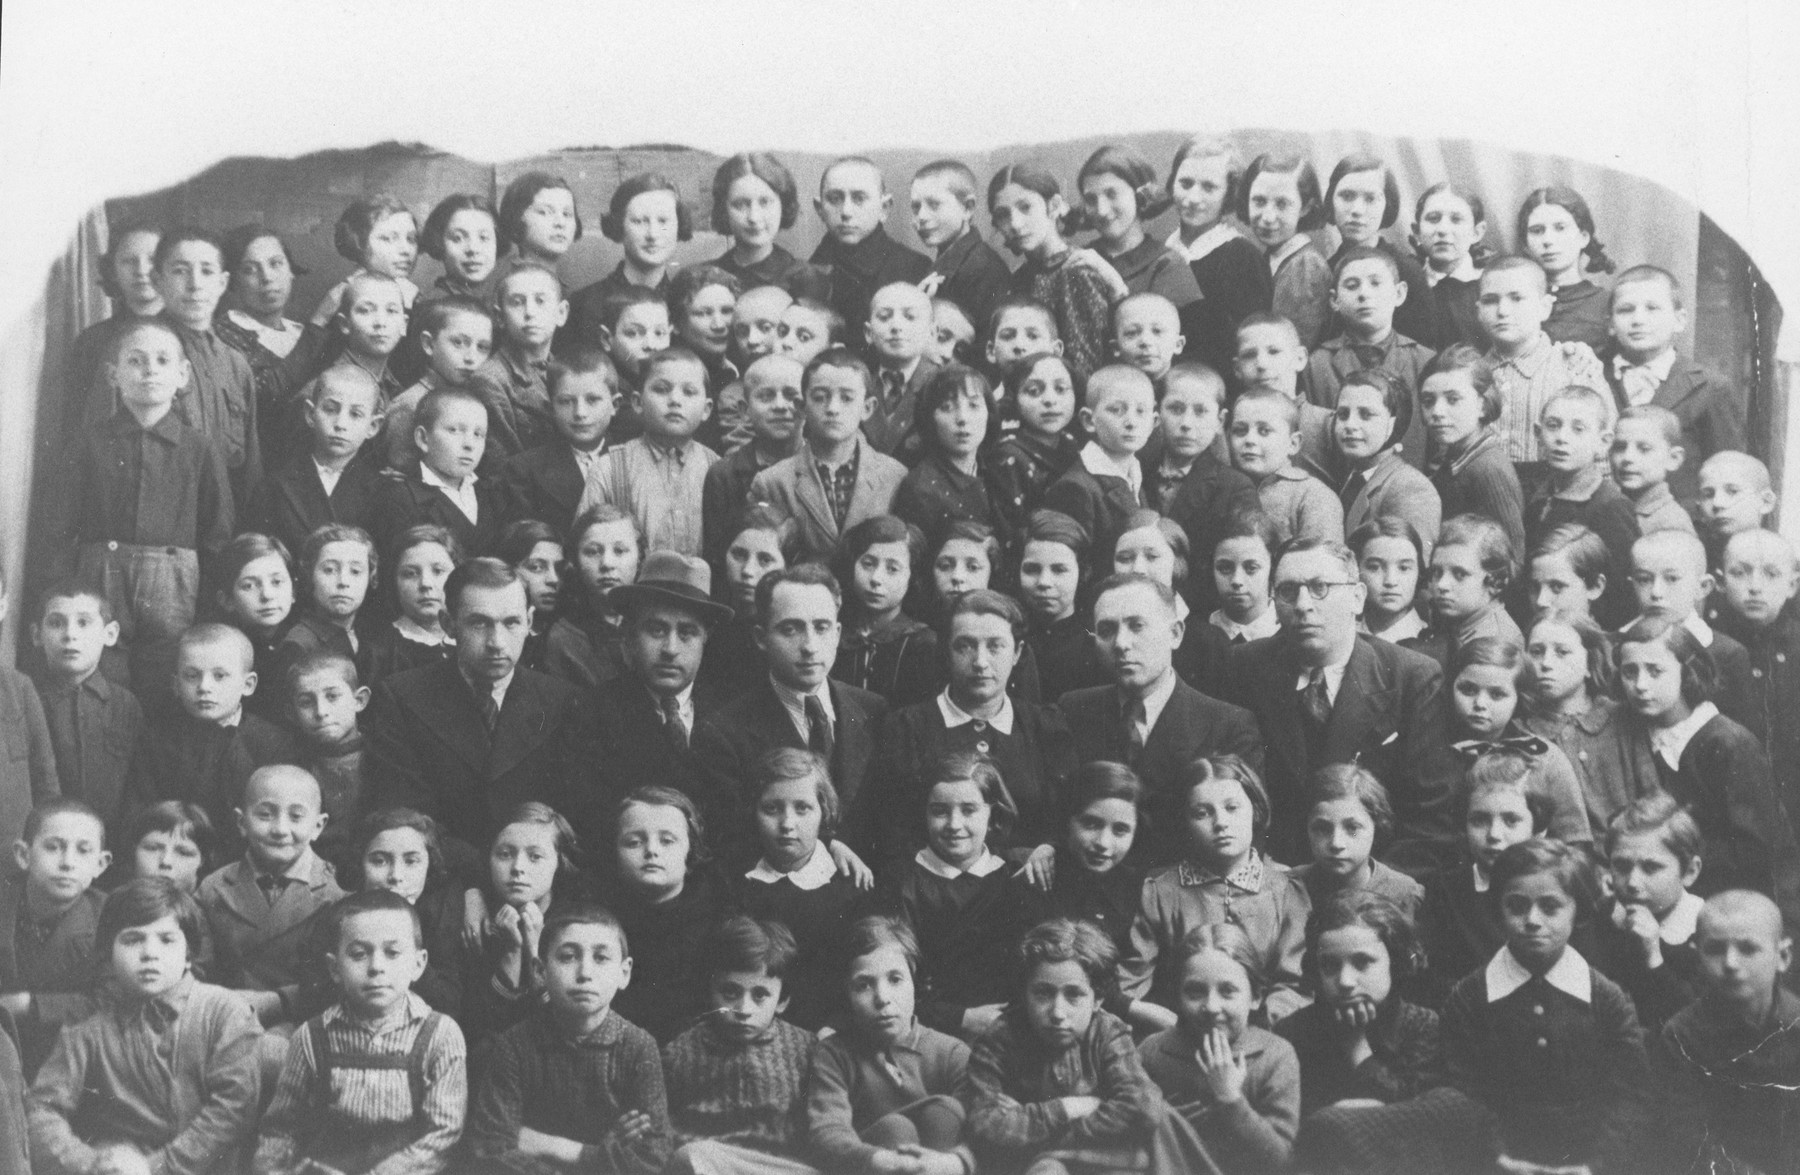 Group portrait of students and teachers in a Jewish school in Telsiai, Lithuania.  The man in the fedora, Rabbi Fivel Krubelnik, was the last head of the Telshe Yeshiva.